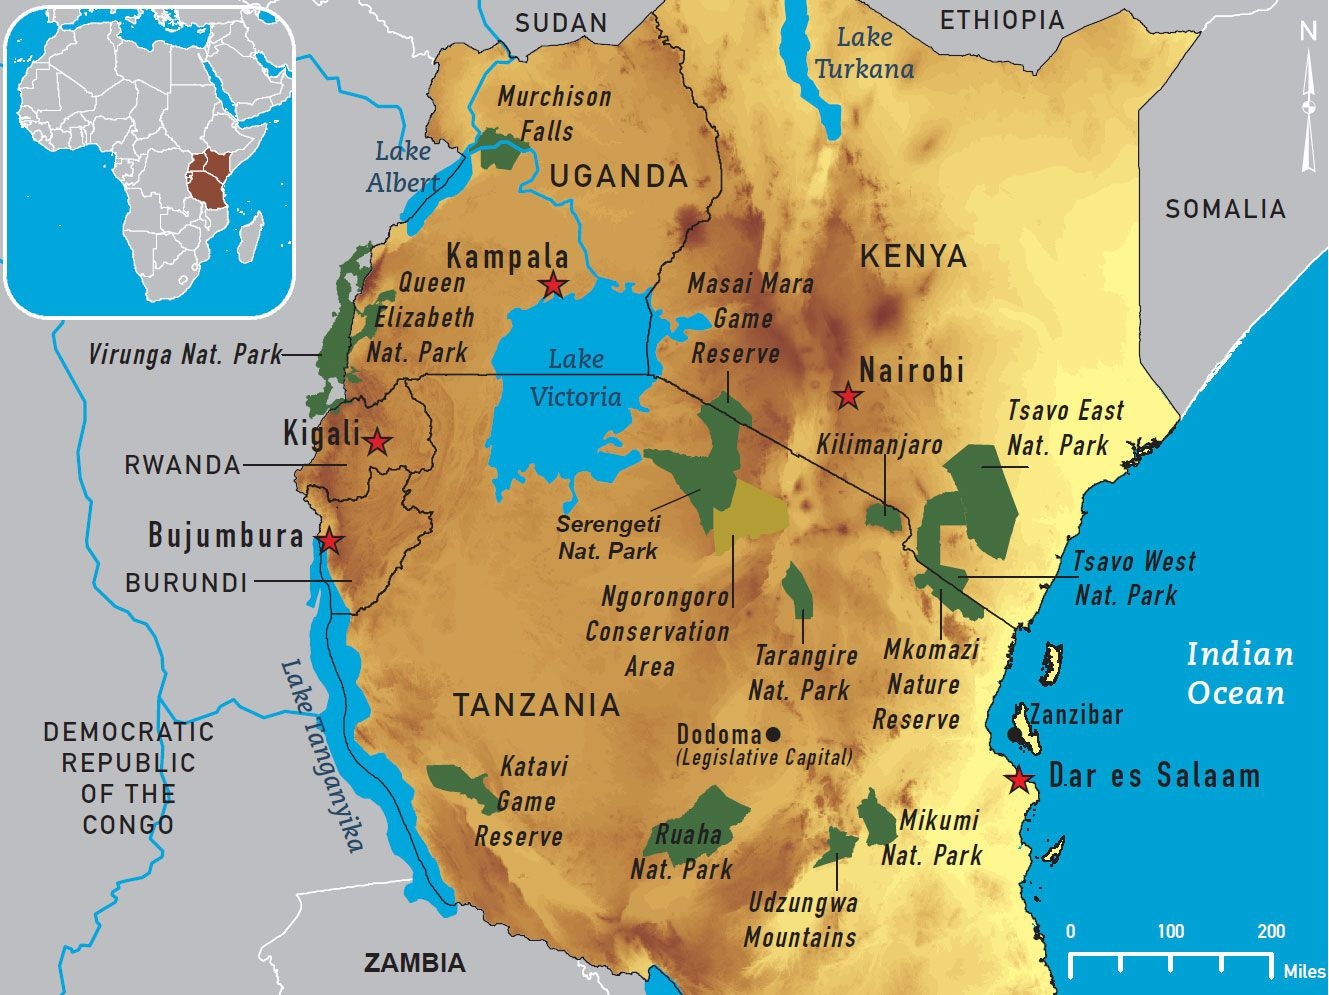 Map Of Africa Lake Victoria.Map Of Central Africa National Parks Map 4 12 East Africa